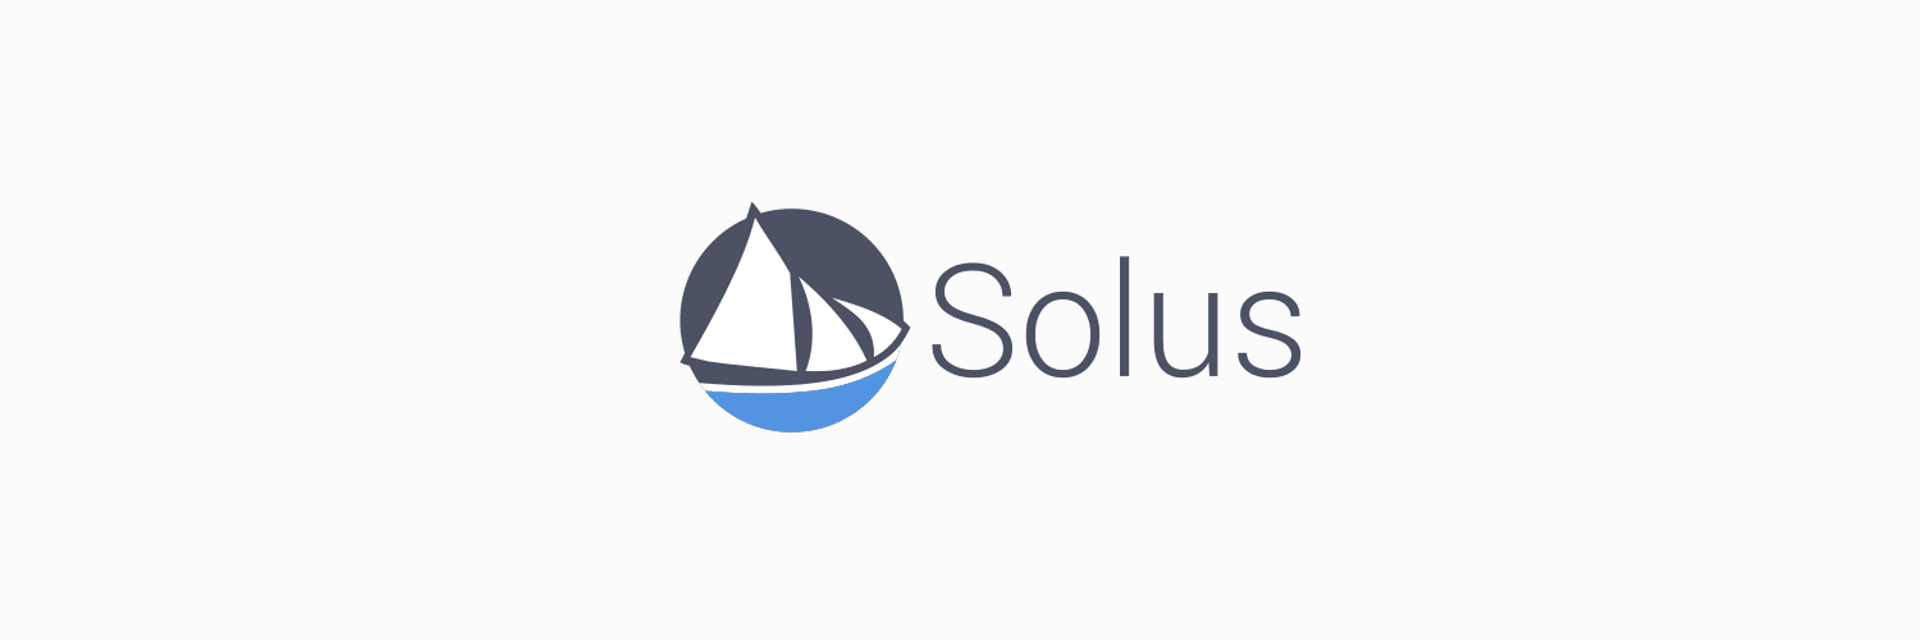 Solus Founder Disappears - Team Loses Access to Patreon Funds